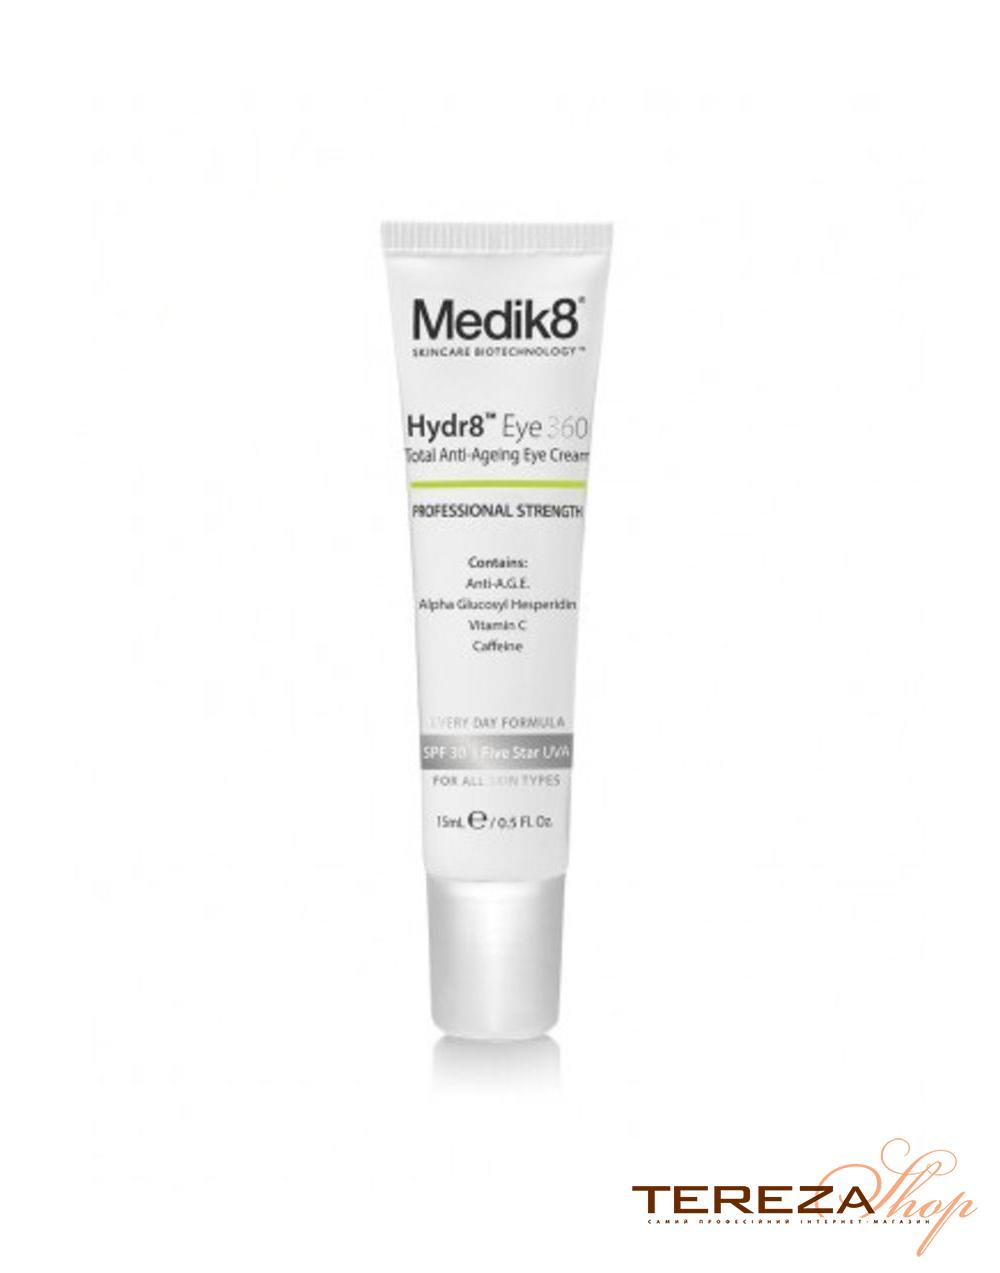 HYDR8 EYE 360 SPF 30 MEDIK8   | Tereza Shop